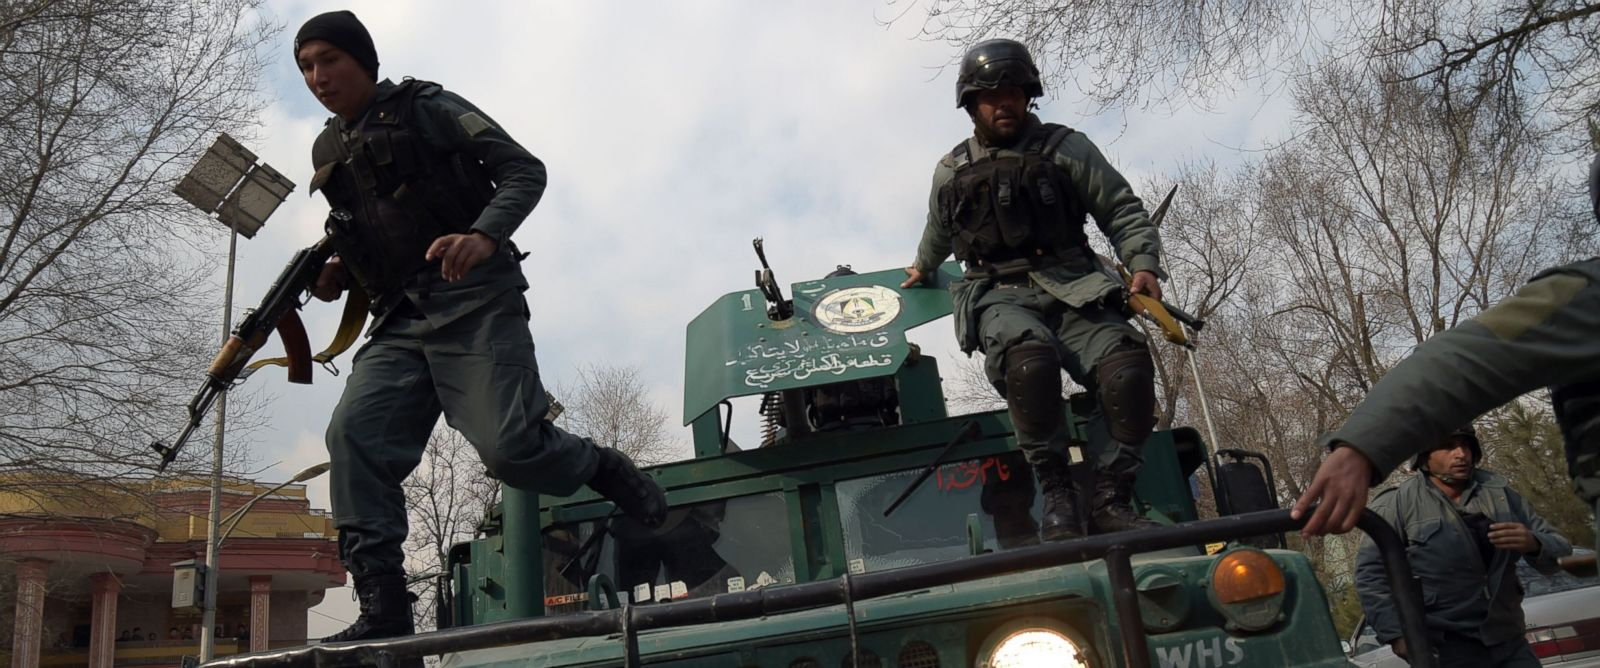 PHOTO: Afghan policemen leap from a vehicle as they arrive at the site of an explosion in Kabul, March 8, 2017.